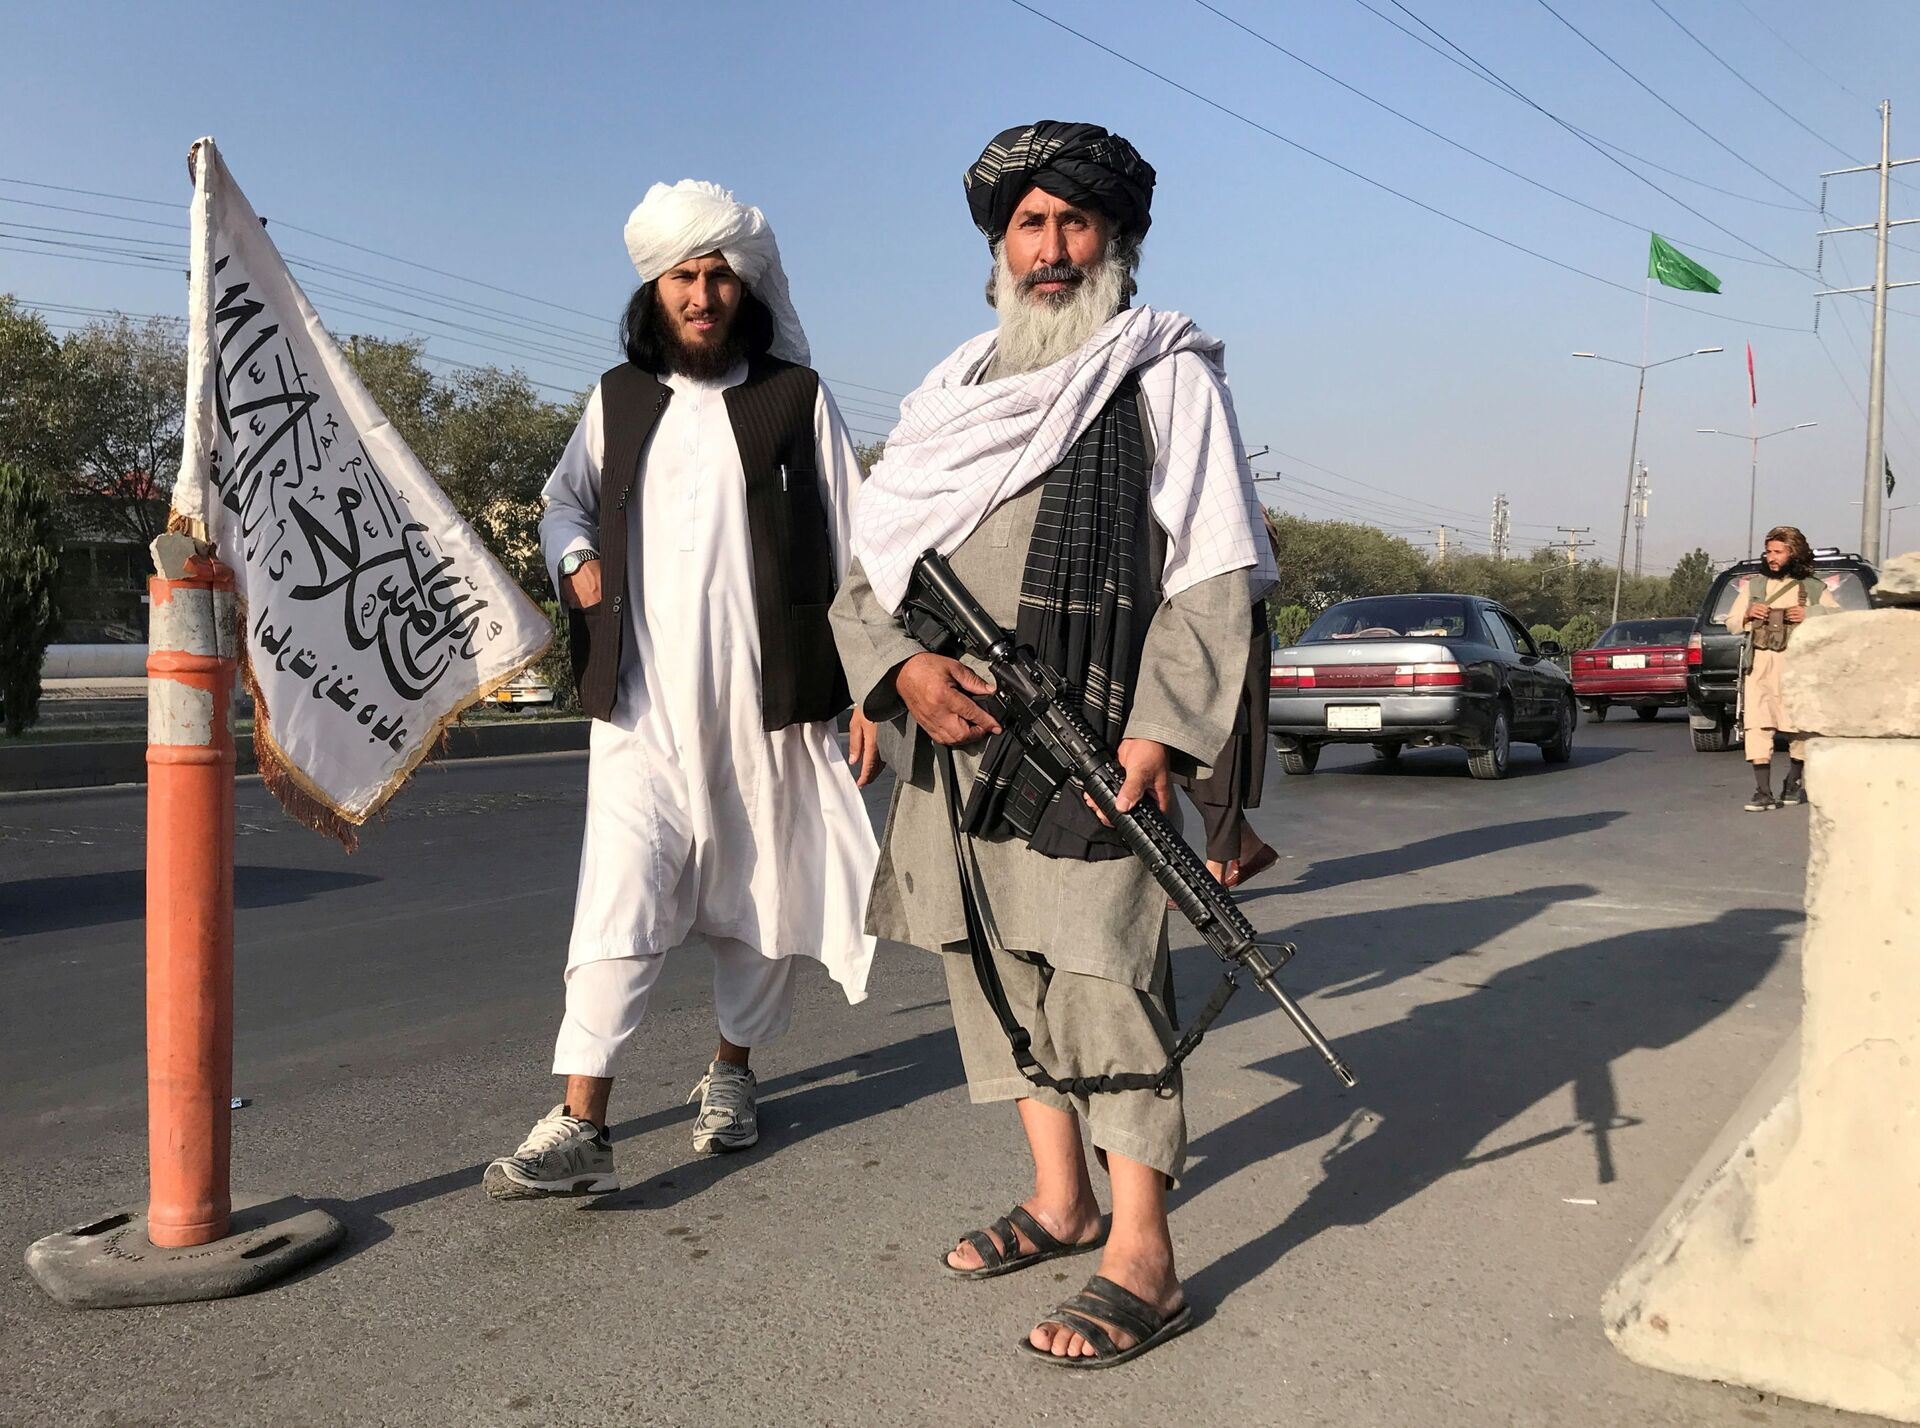 FILE PHOTO: A Taliban fighter holding an M16 assault rifle stands outside the Interior Ministry in Kabul, Afghanistan, August 16, 2021. - Sputnik International, 1920, 07.09.2021